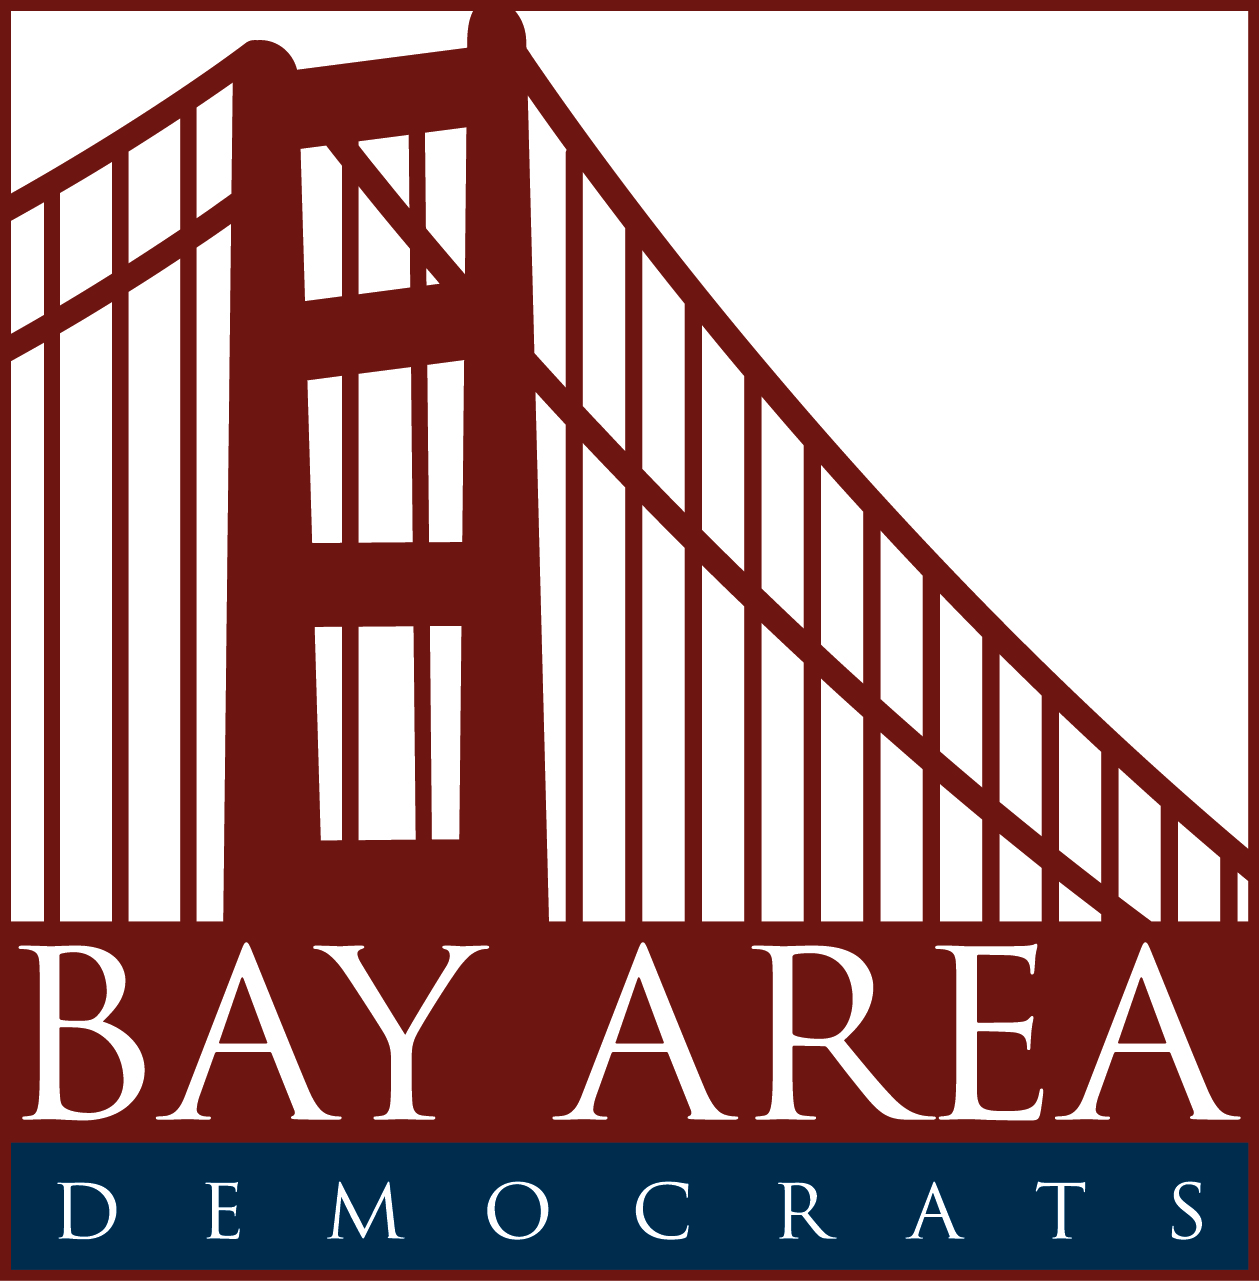 Bay Area Democrats